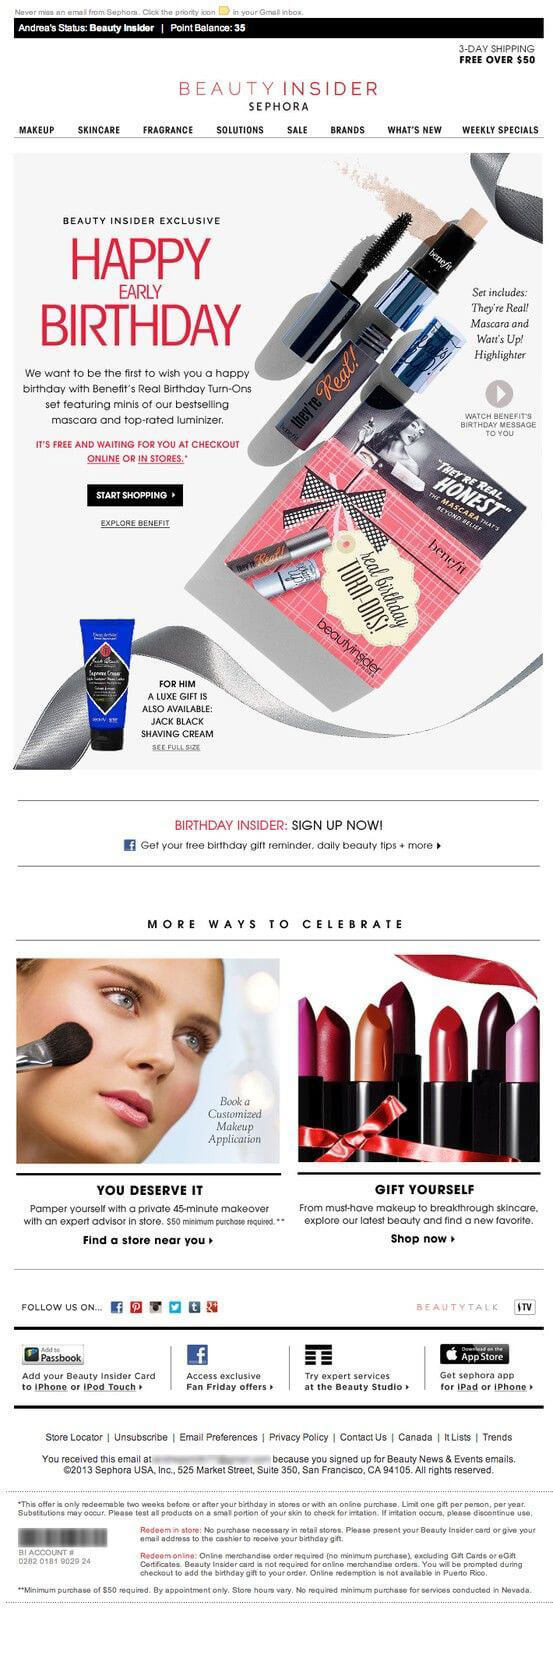 personalized email campaigns-Beauty Insiders